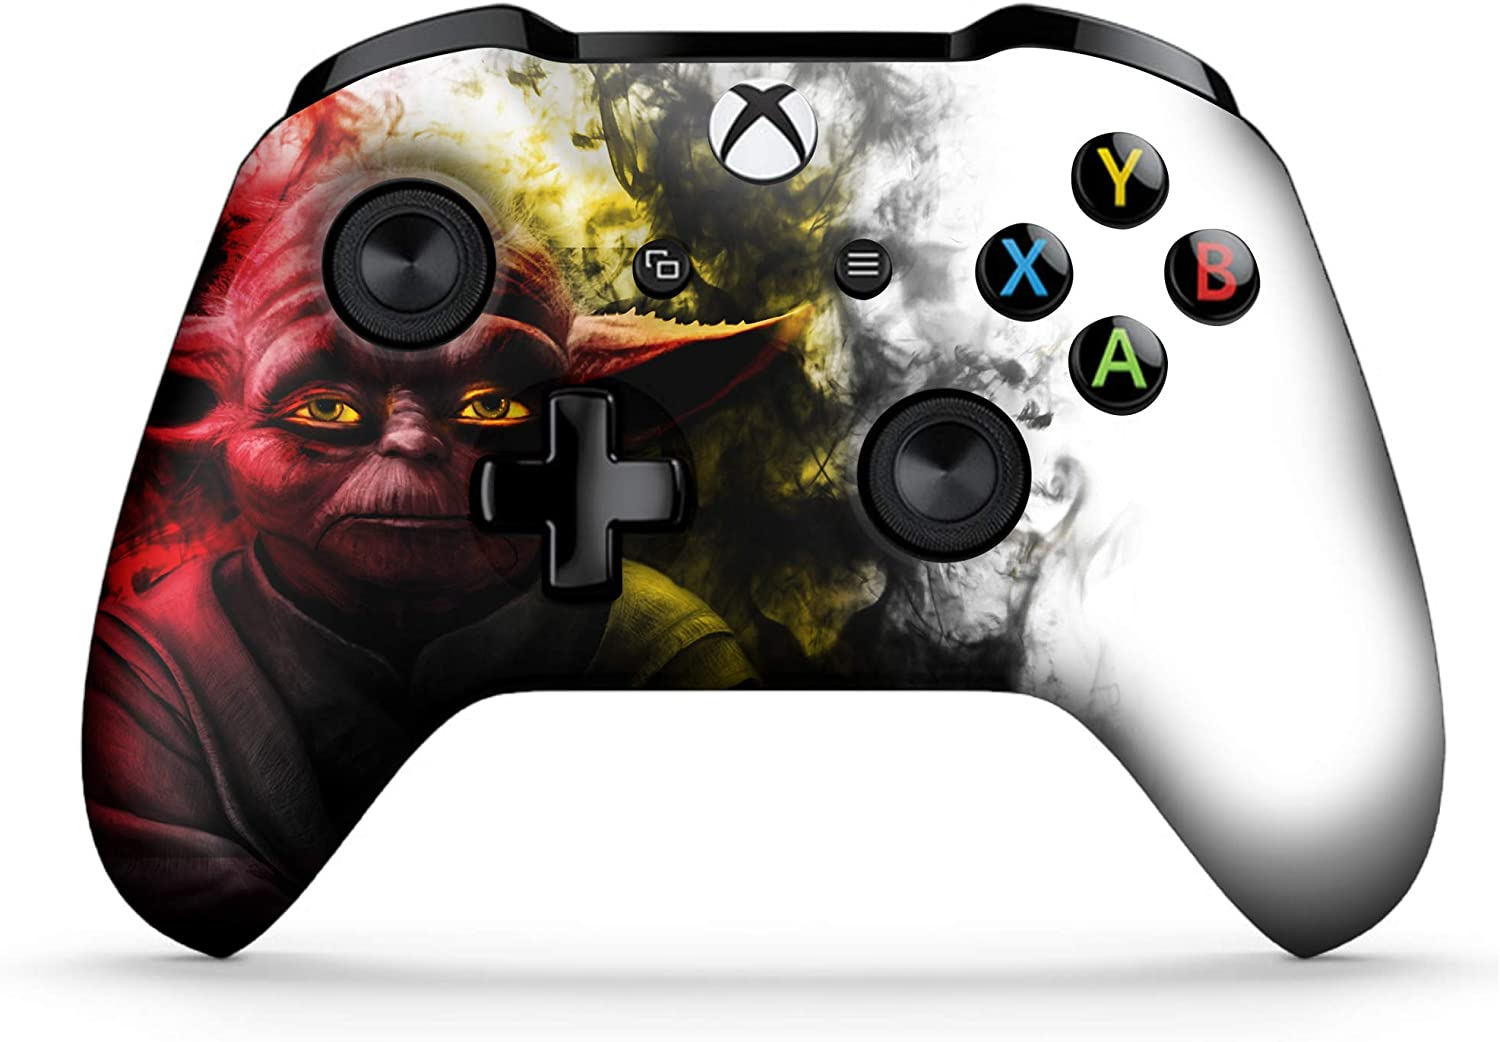 DreamController Modded X Box One Controller Wireless - Control X Box One Aim Assist Controller - X Box Controller for PC